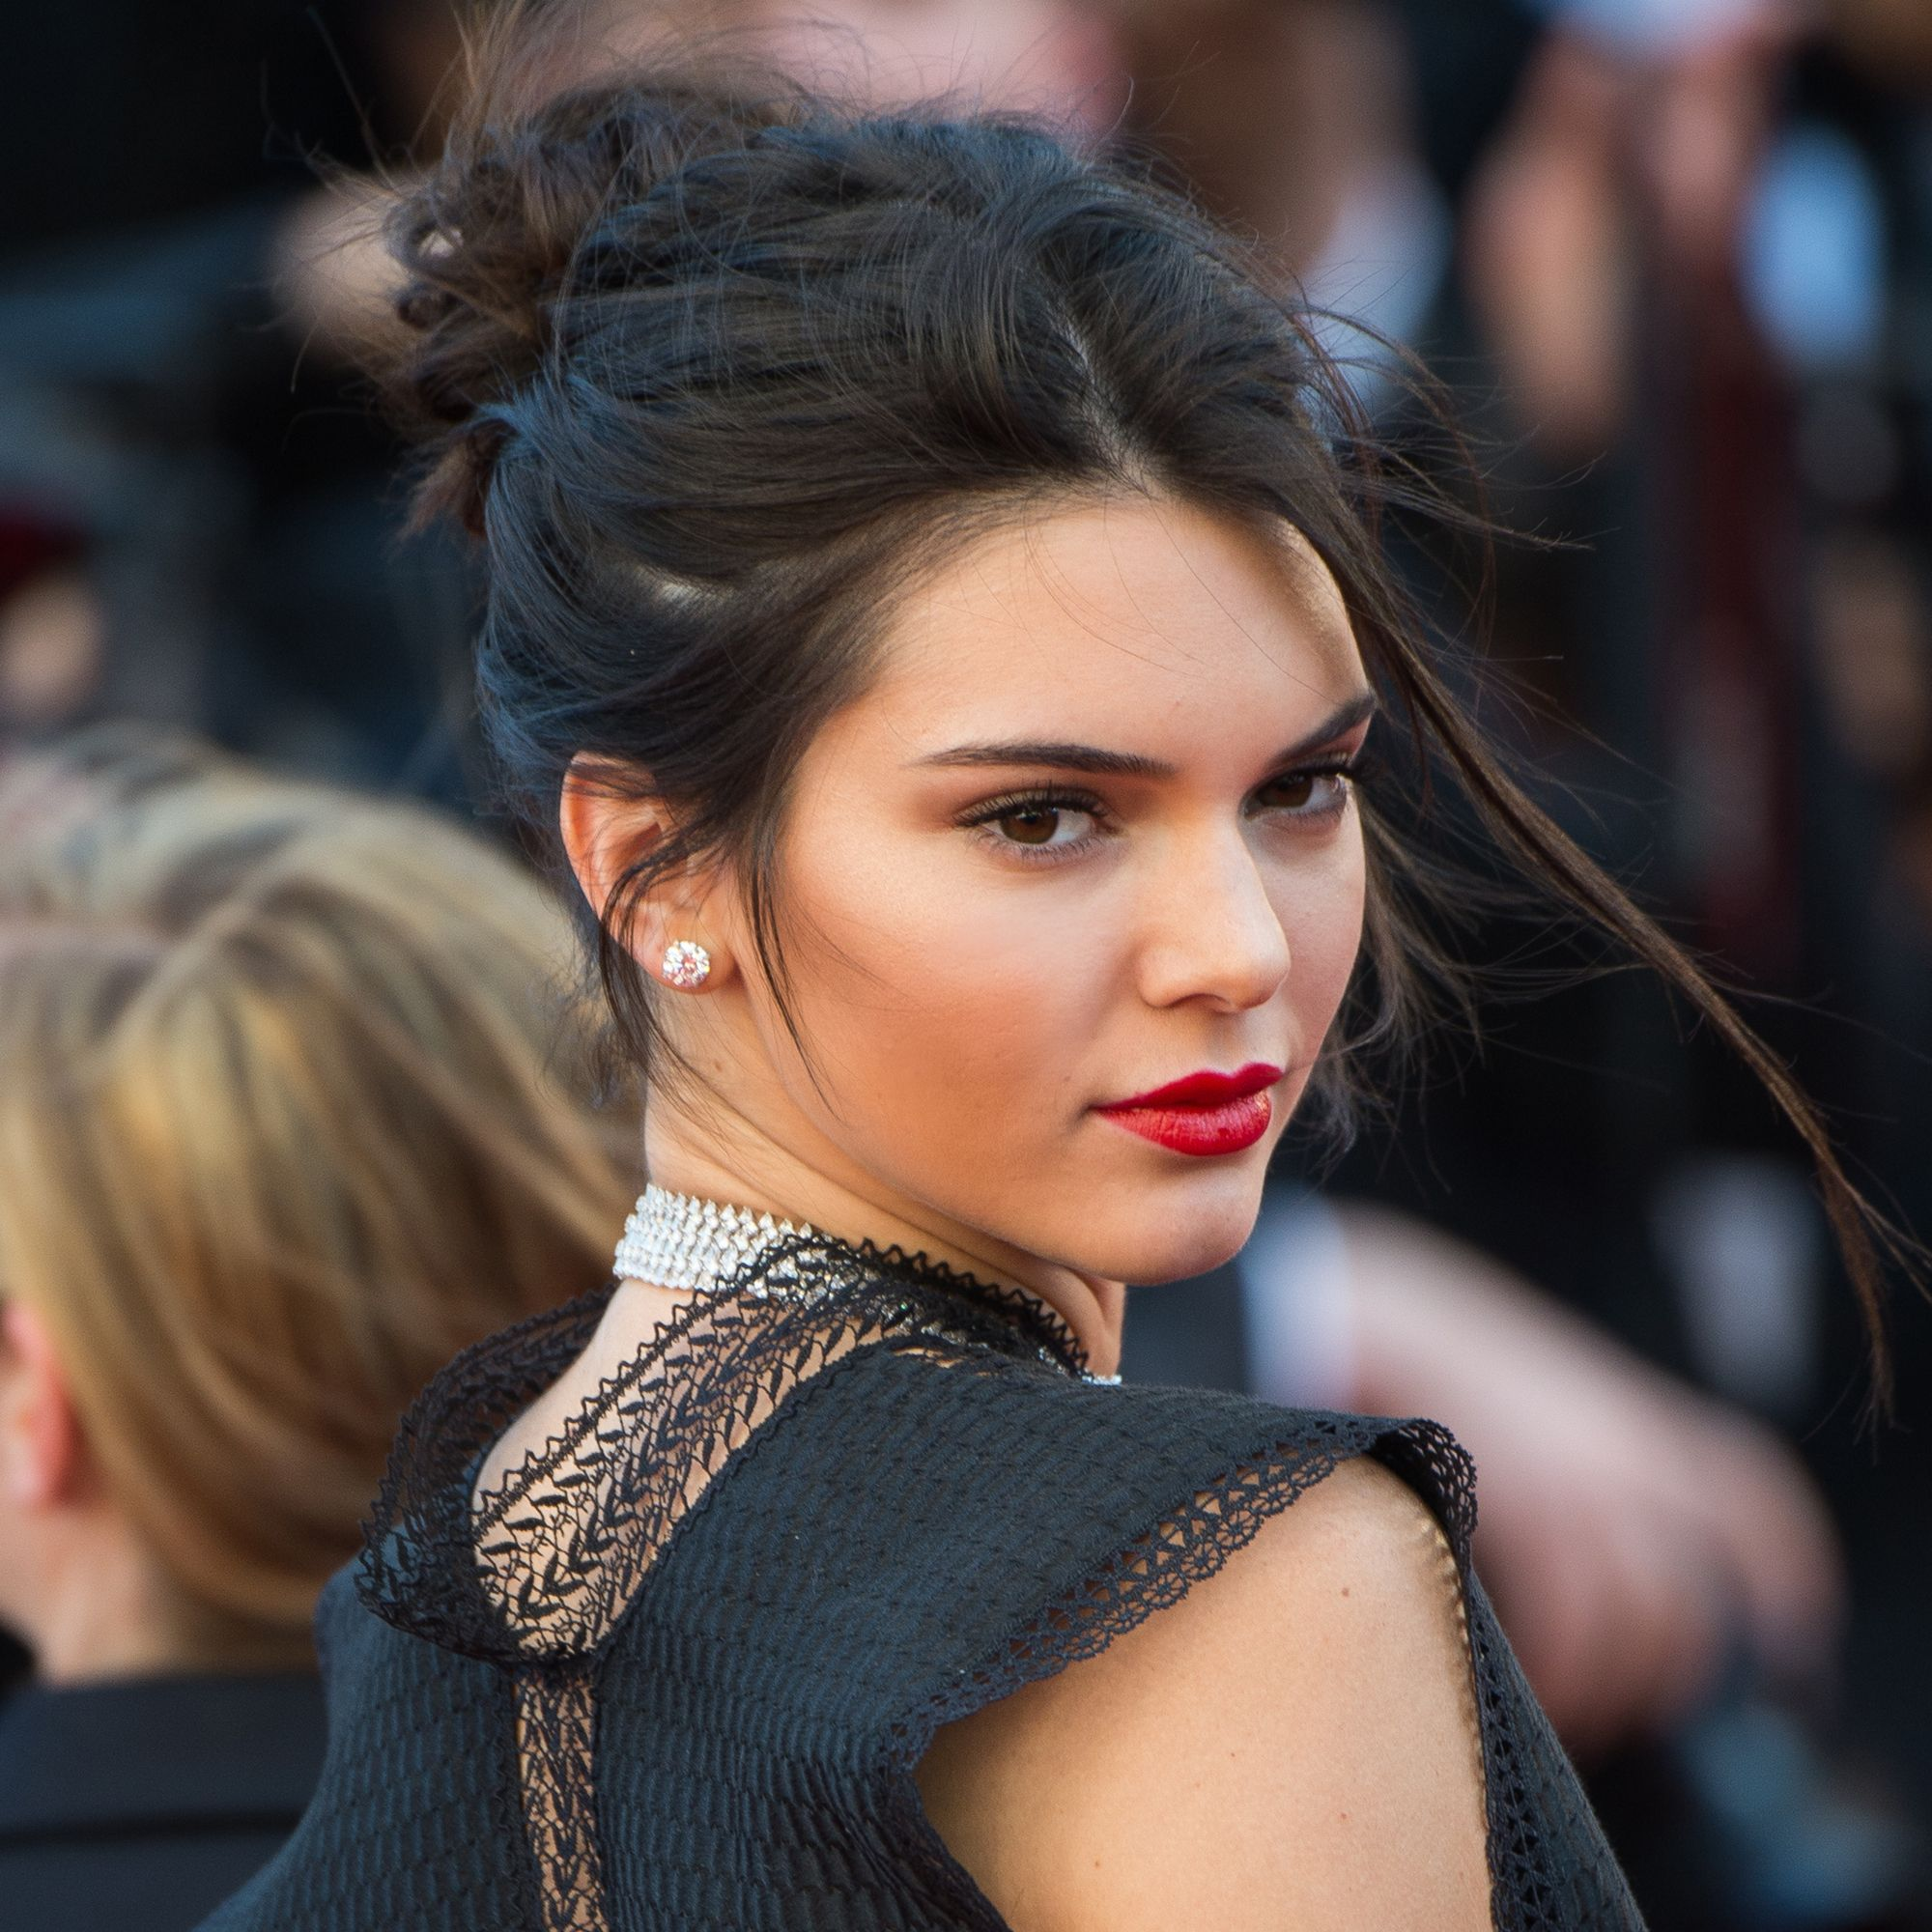 """CANNES, FRANCE - MAY 20:  Kendall Jenner attends the """"Youth""""  Premiere during the 68th annual Cannes Film Festival on May 20, 2015 in Cannes, France.  (Photo by Samir Hussein/WireImage)"""